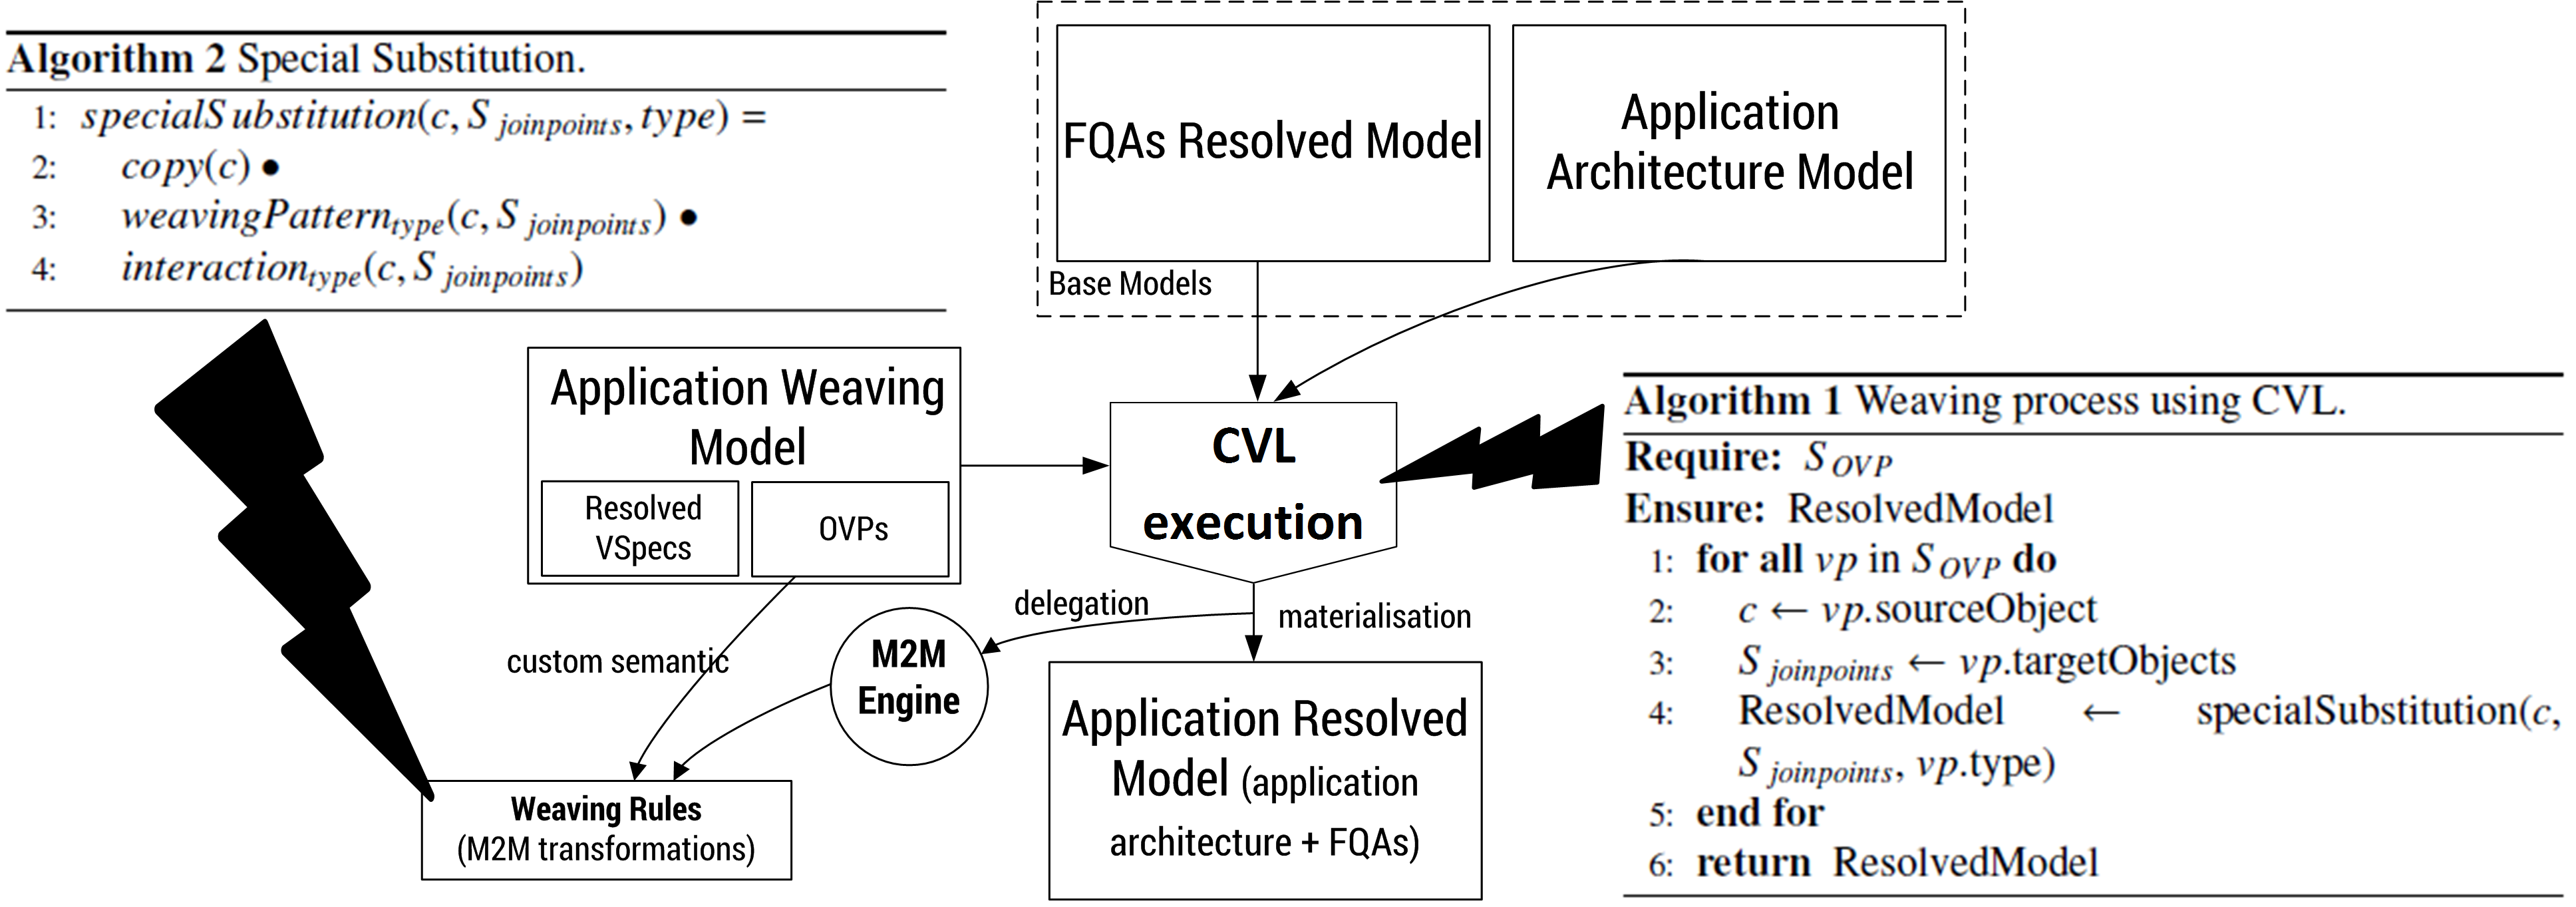 Modeling, customizing and weaving FQAs with CVL.